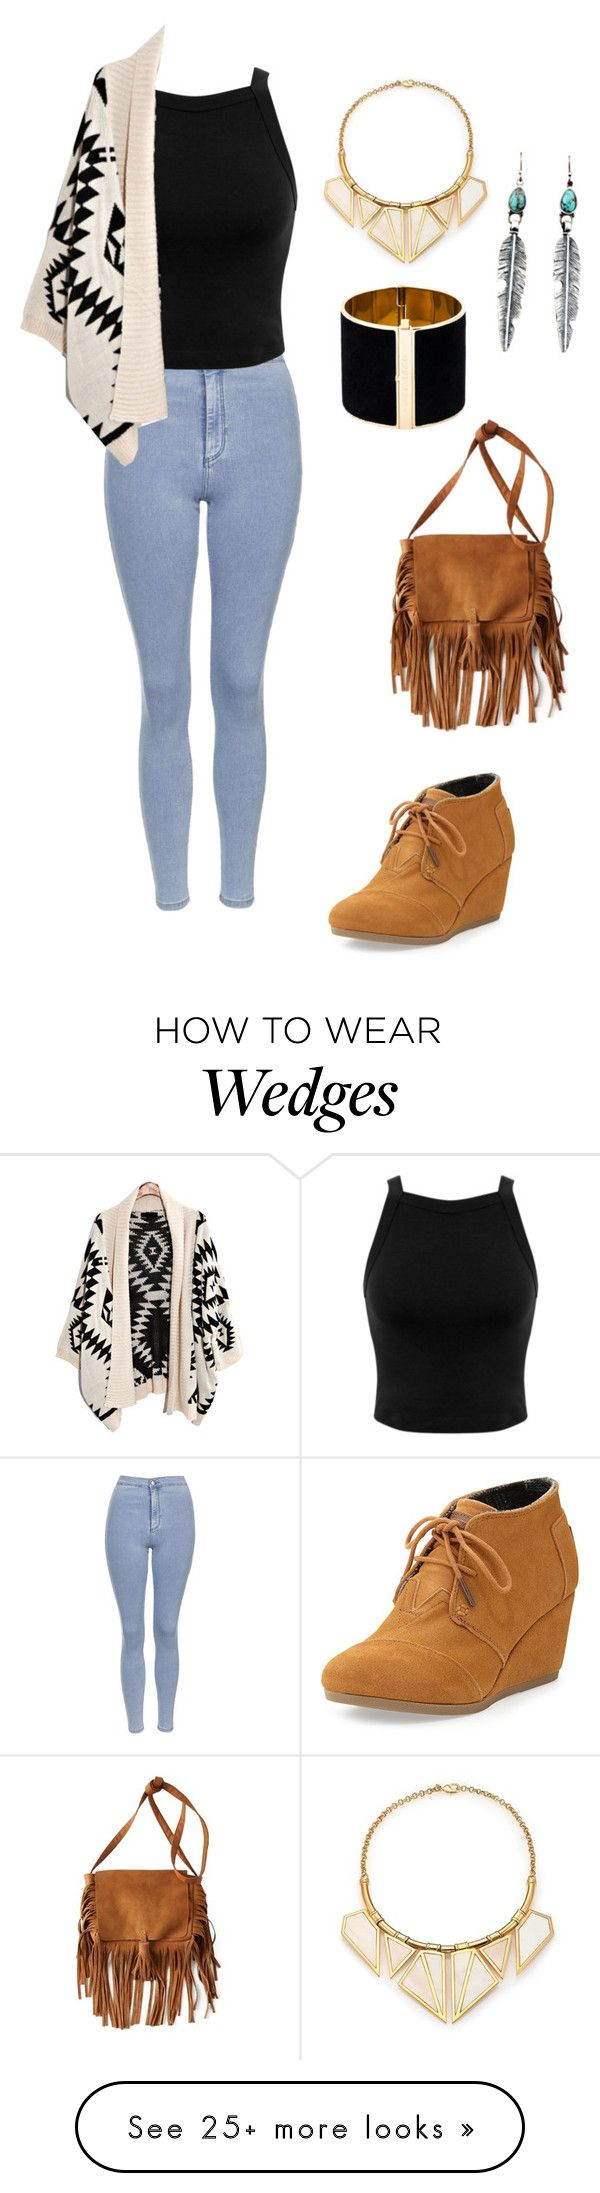 Toms wedge booties #94 by thereseatarwang on Polyvore featuring TOMS, Topshop, Miss Selfridge, Dsquared2, A Peace Treaty and American Eagle Outfitters